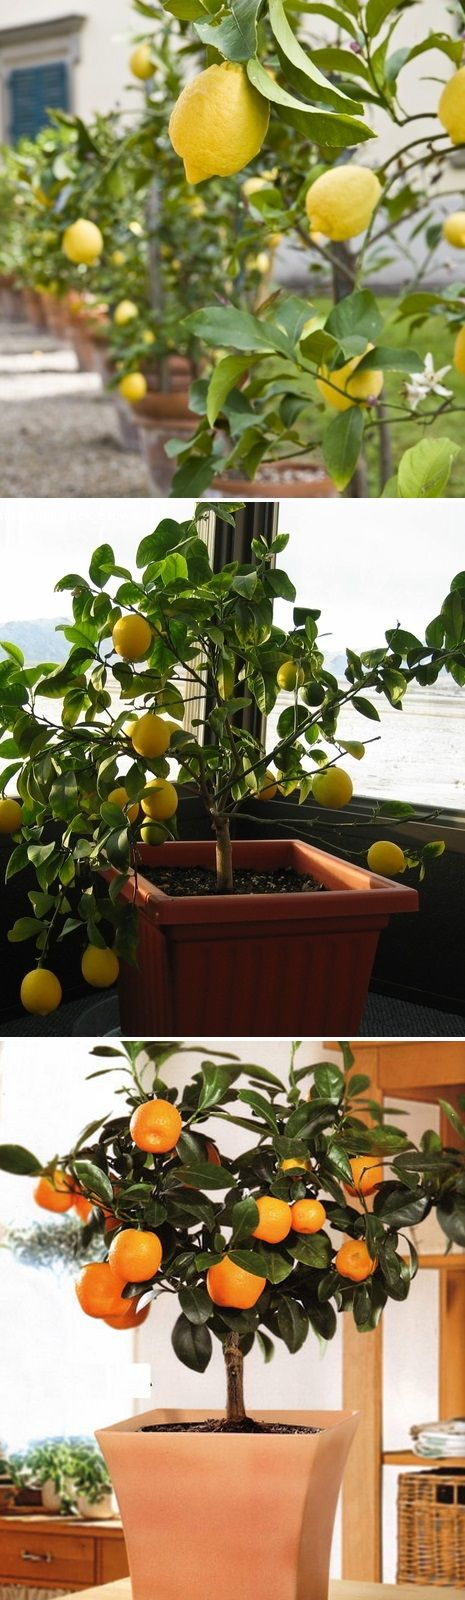 most popular dwarf citrus trees to grow in containers:    Calamondin, Kaffir Lime, Meyer lemon, Minneola Tangelo, Dwarf Bearss Seedless Lime, Owari Satsuma Mandarin Orange.